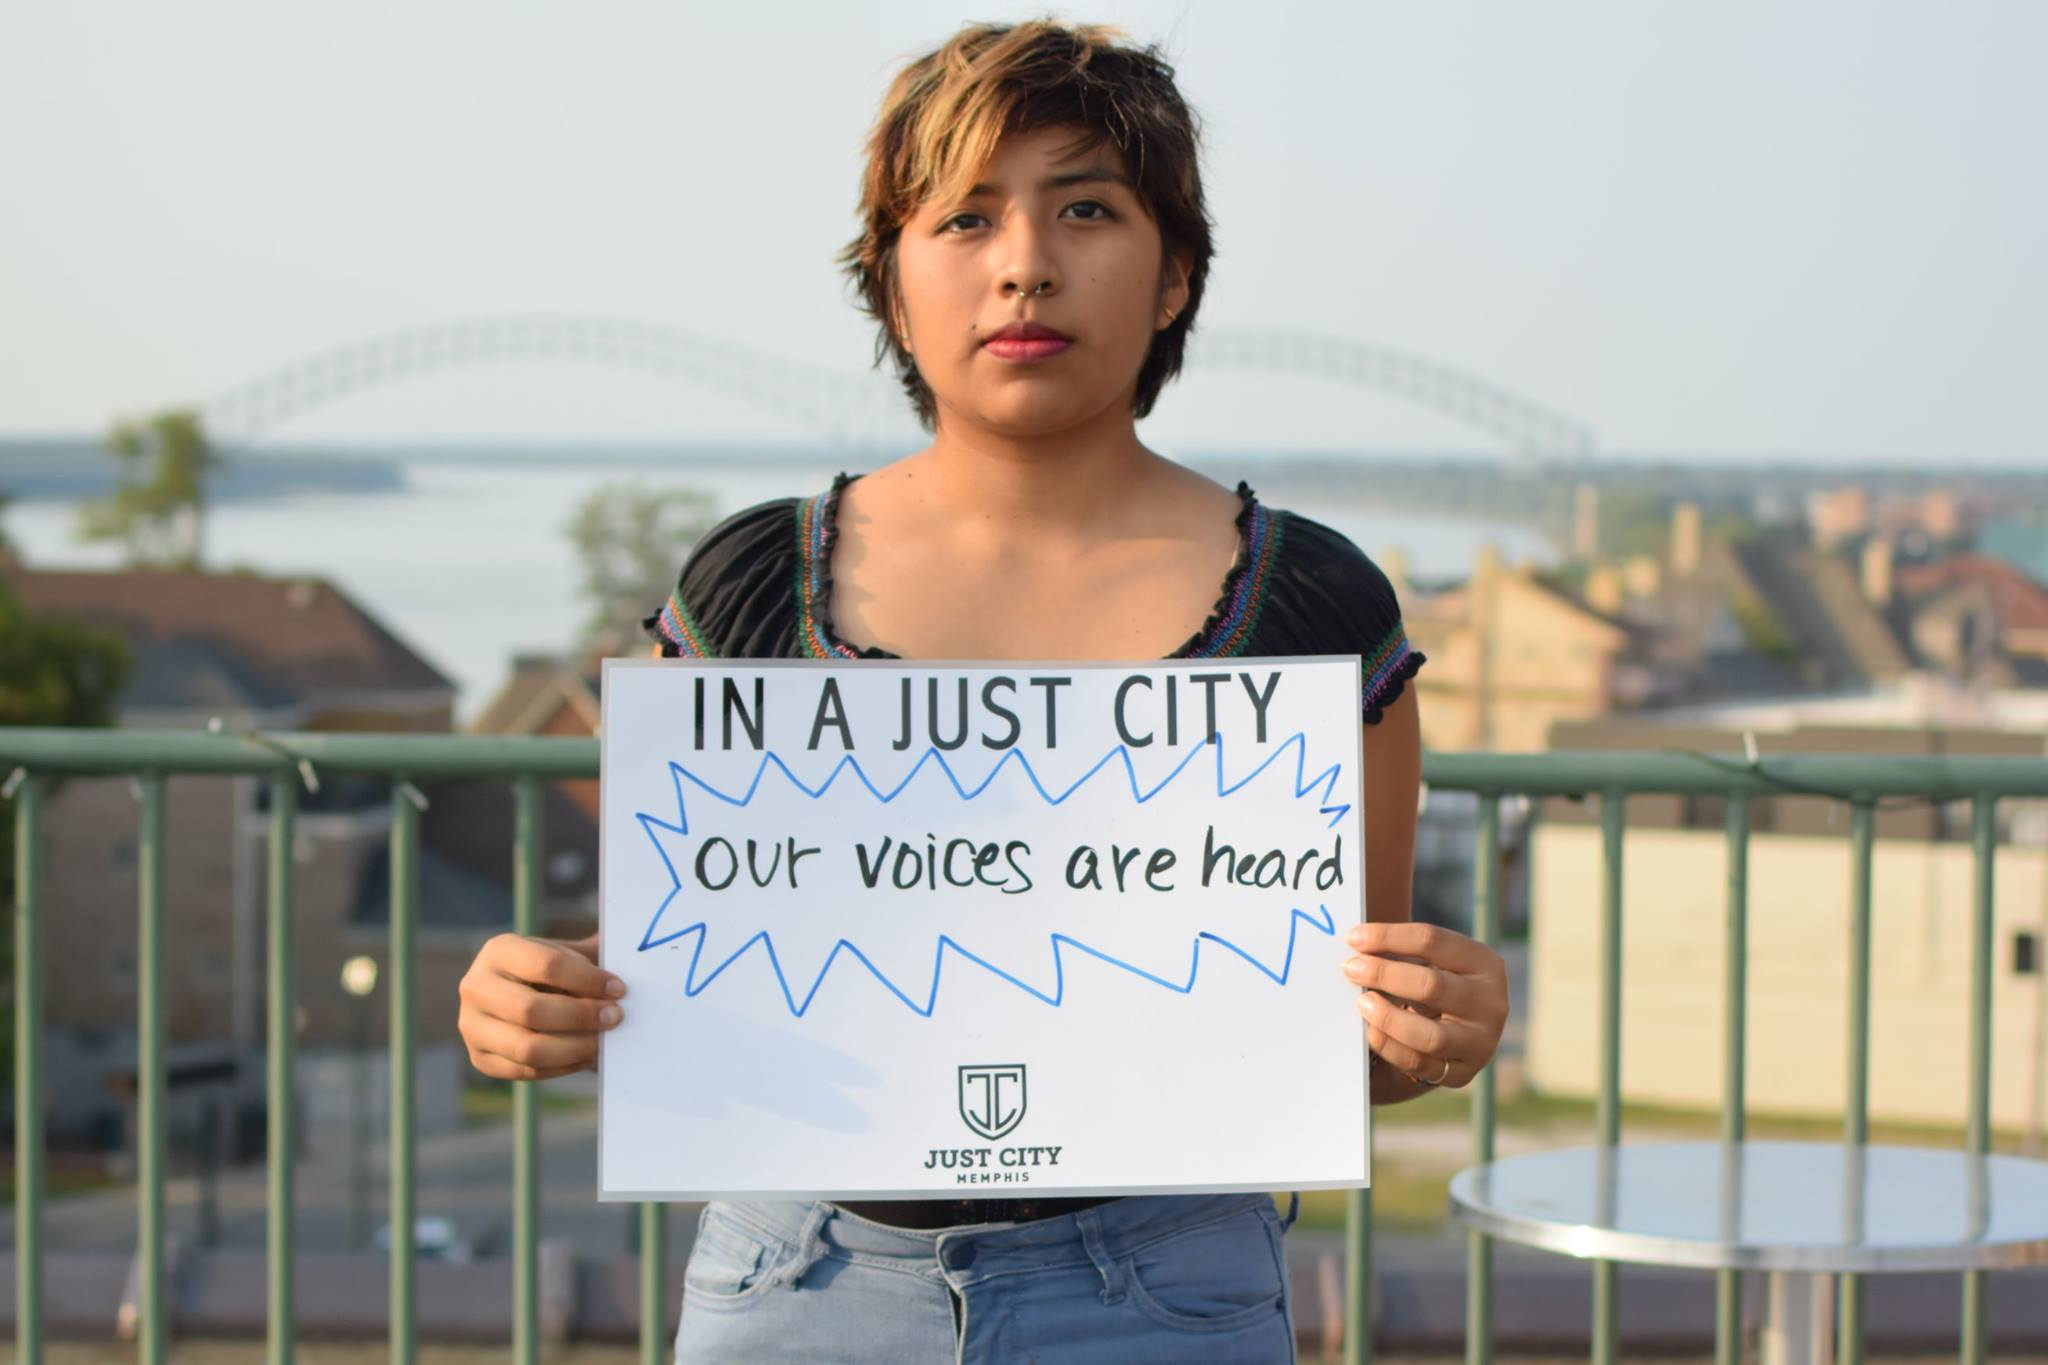 Just City is one of six grantees who are working to advance the work of Dr. Martin Luther King Jr. in Memphis, Tenn.